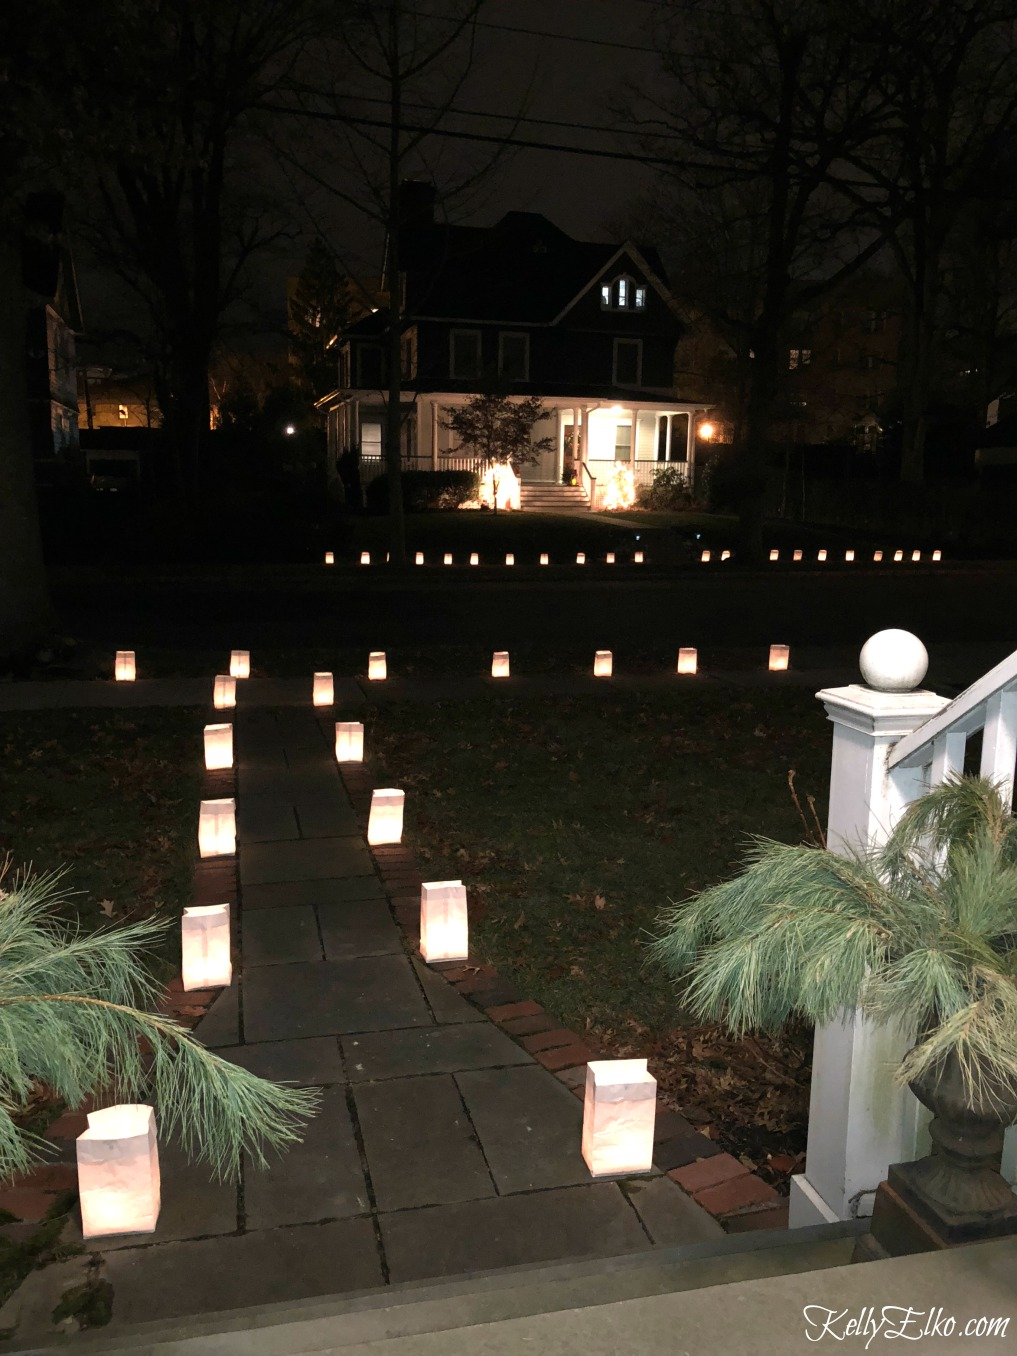 Christmas luminaries - the whole town lines their sidewalks with glowing luminaries kellyelko.com